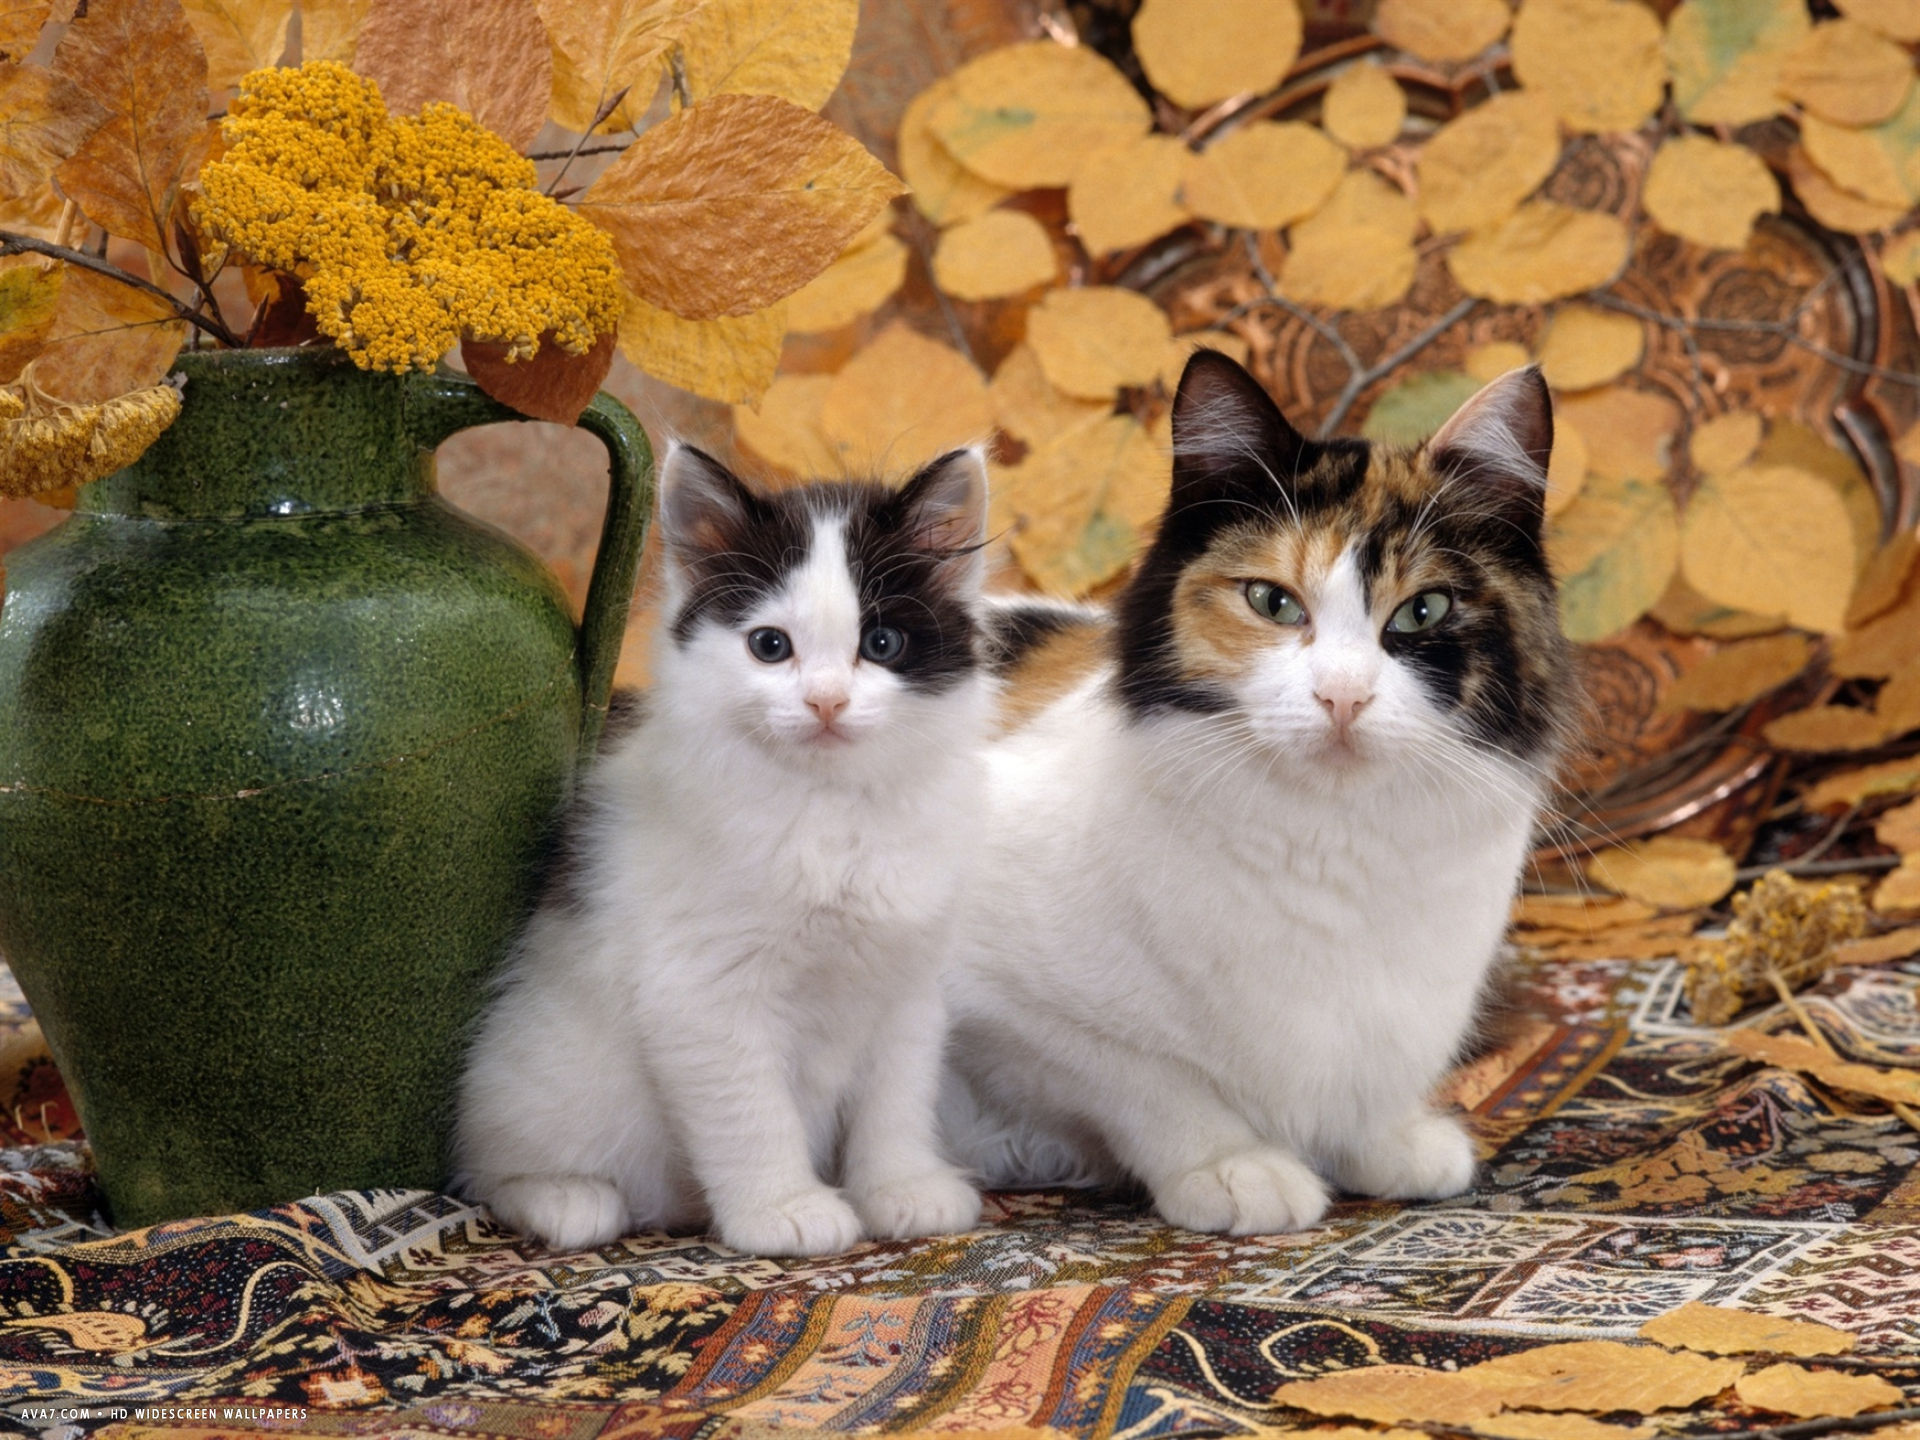 tortoiseshell and white mother with her black and white kitten